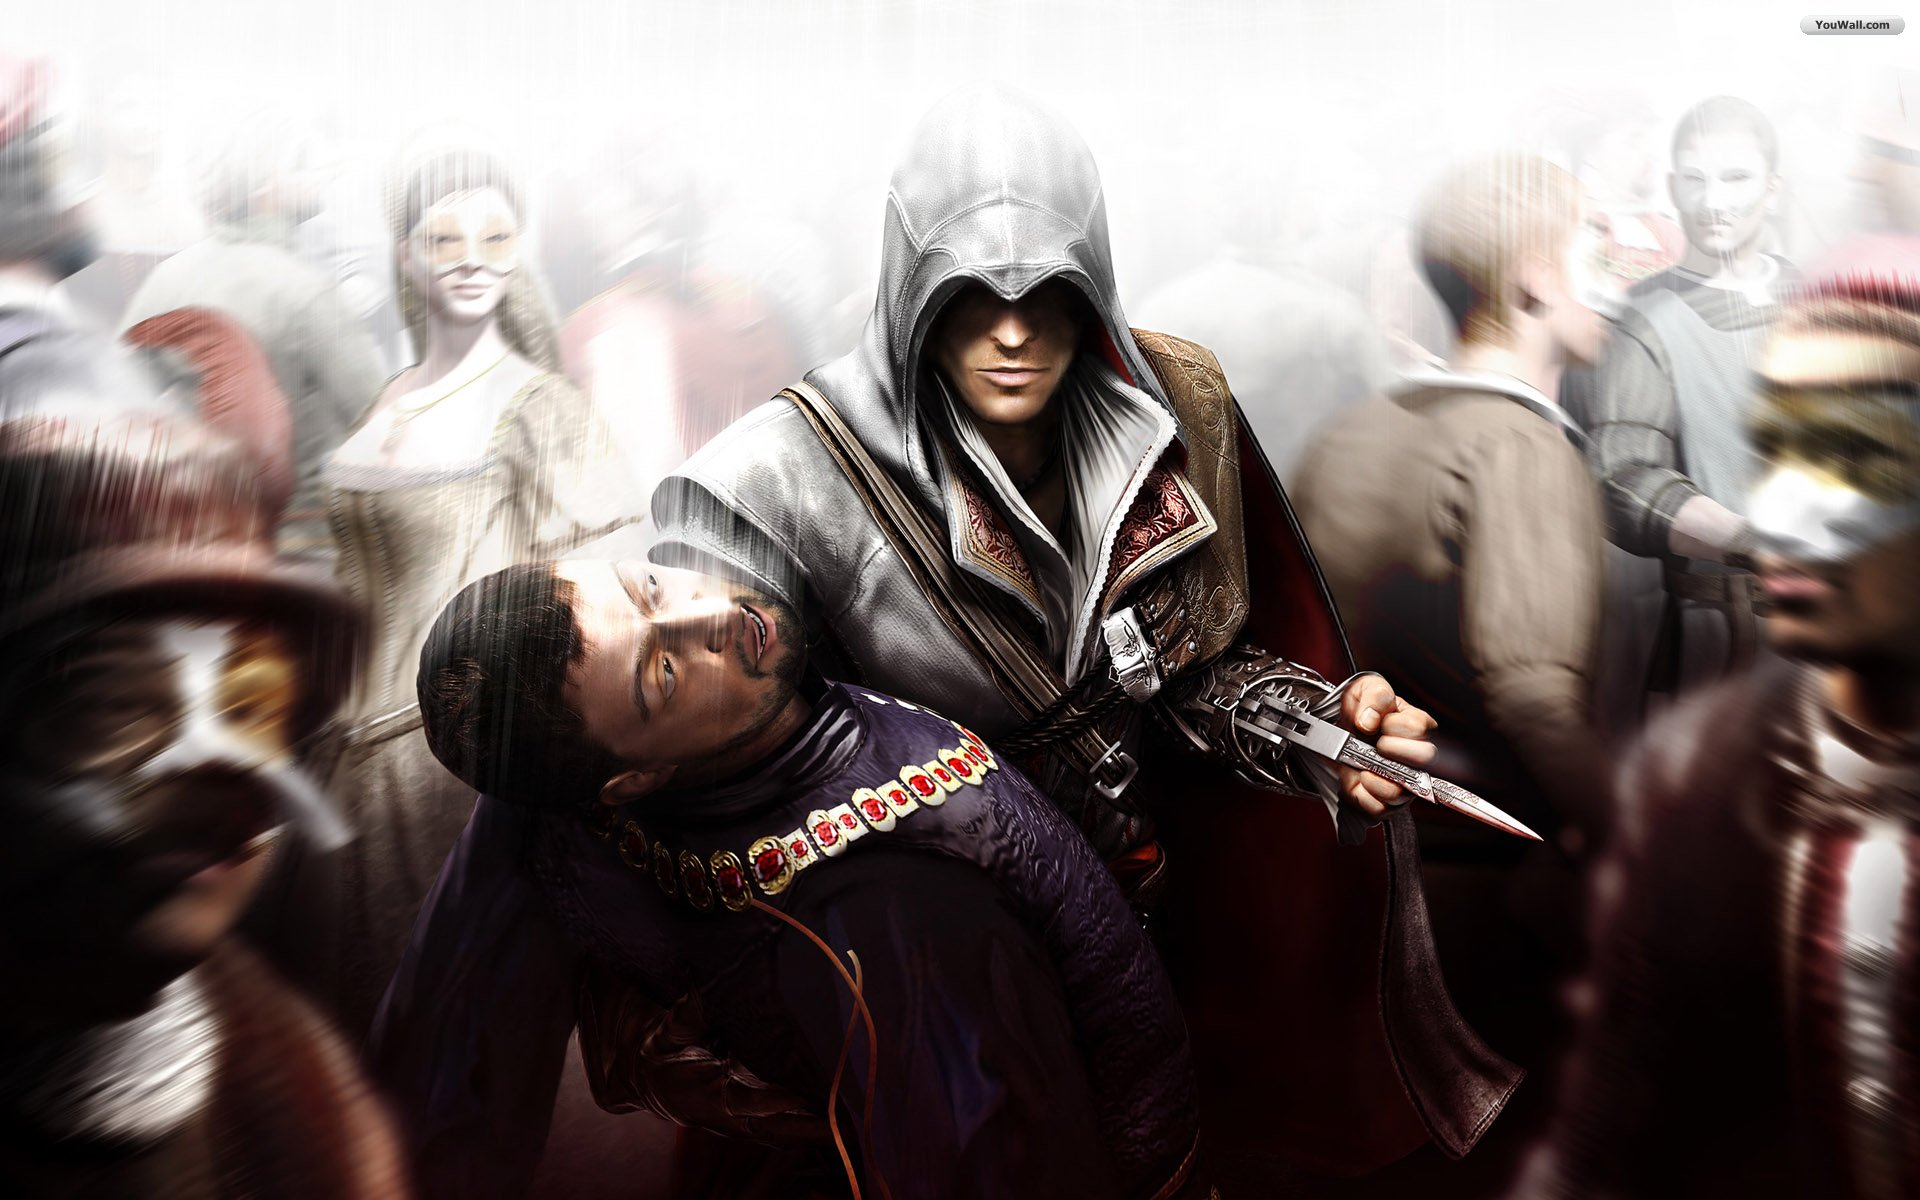 image - assassins creed brotherhood wallpaper 3c844 | assassin's